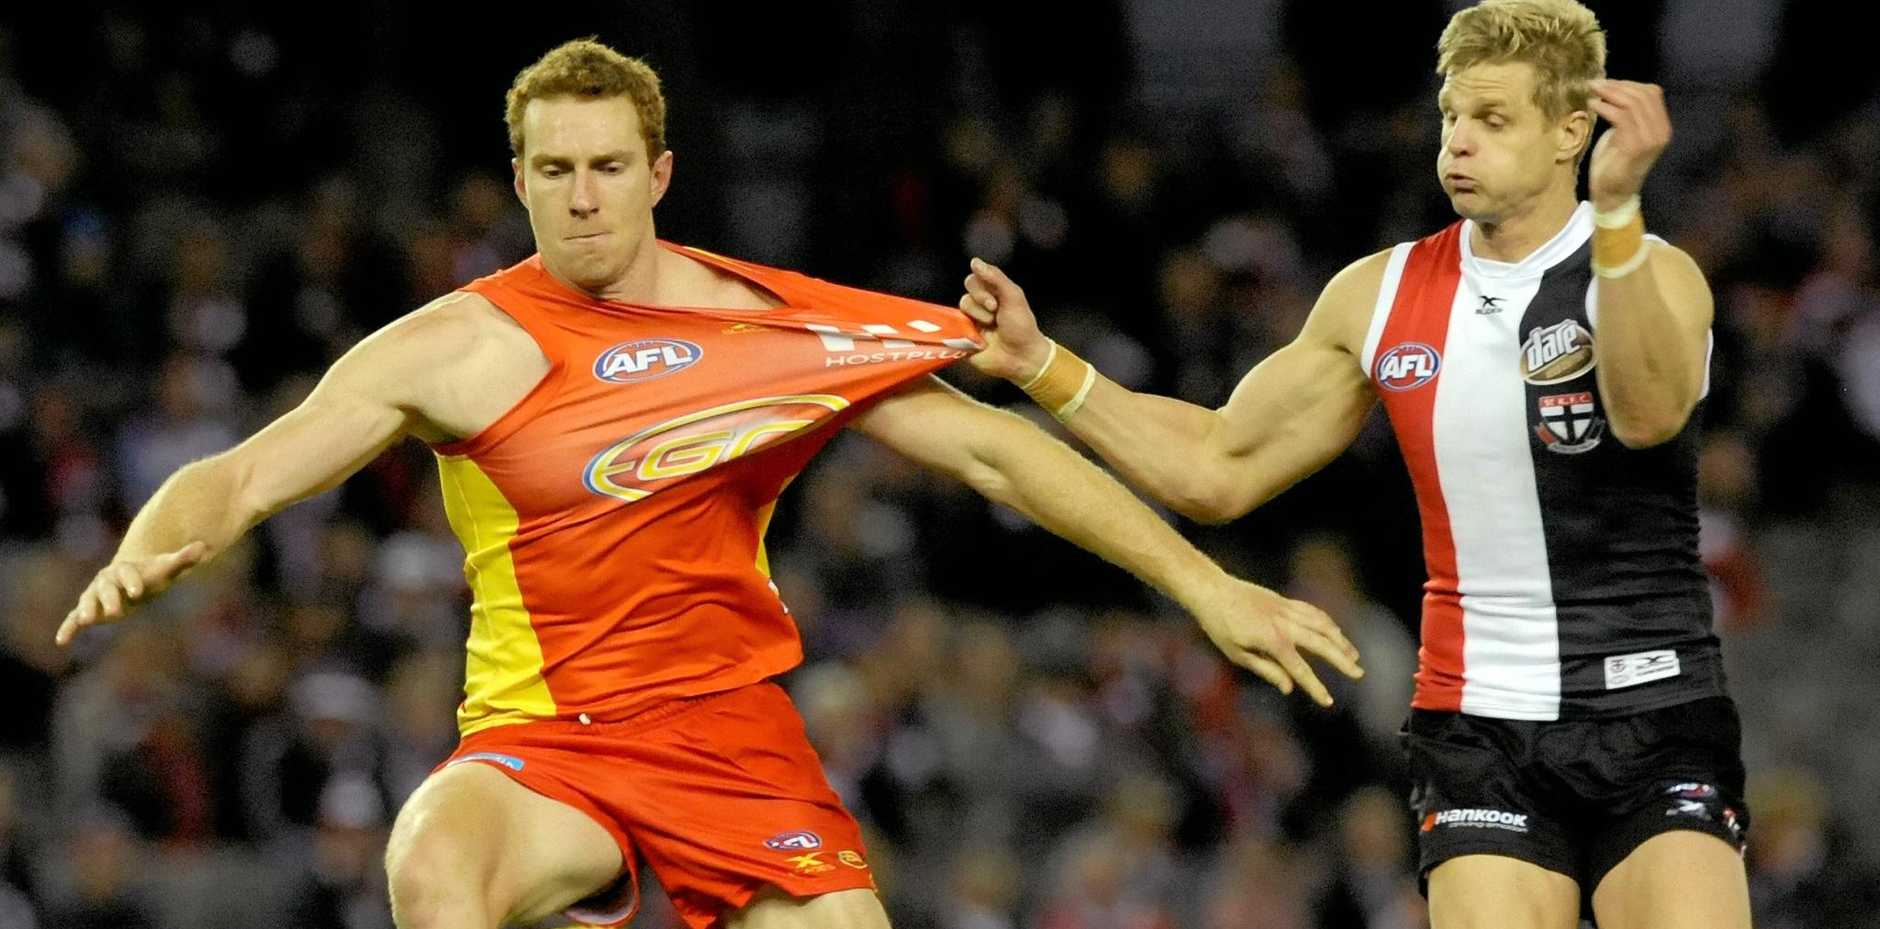 TOUGH ASK: Rory Thompson played his comeback match from injury against St Kilda's Nick Riewoldt.